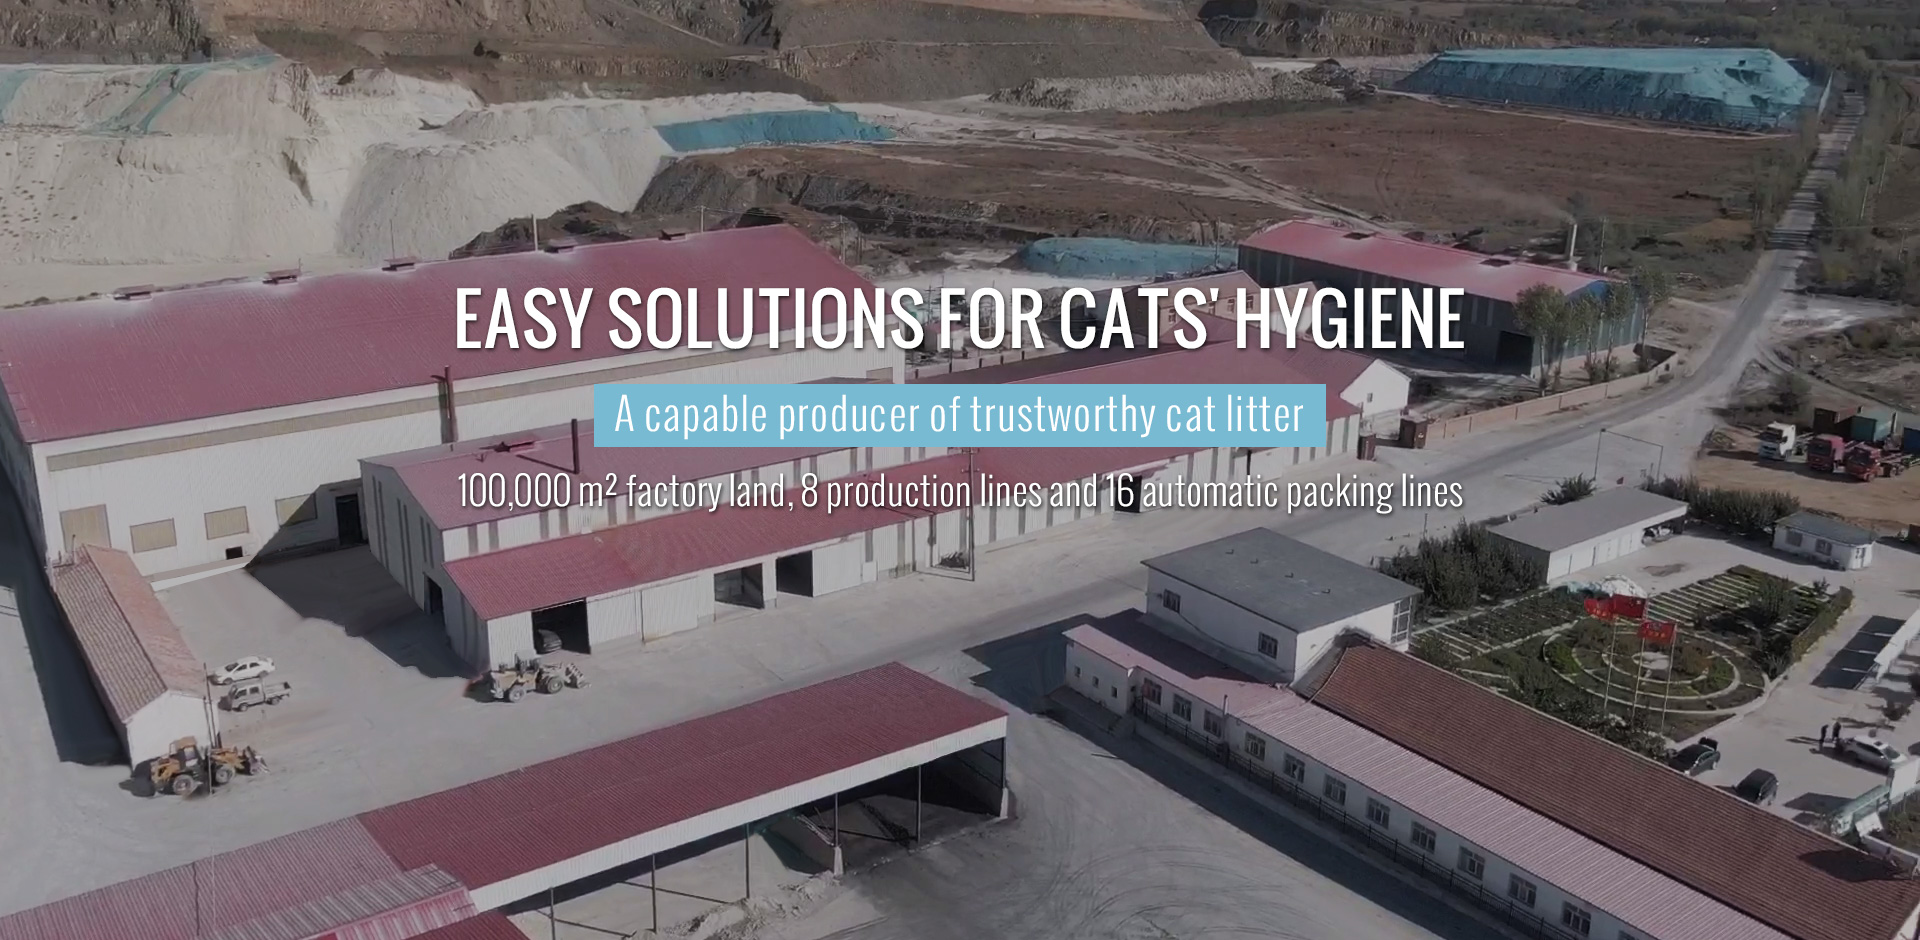 EASY SOLUTIONS FOR CATS